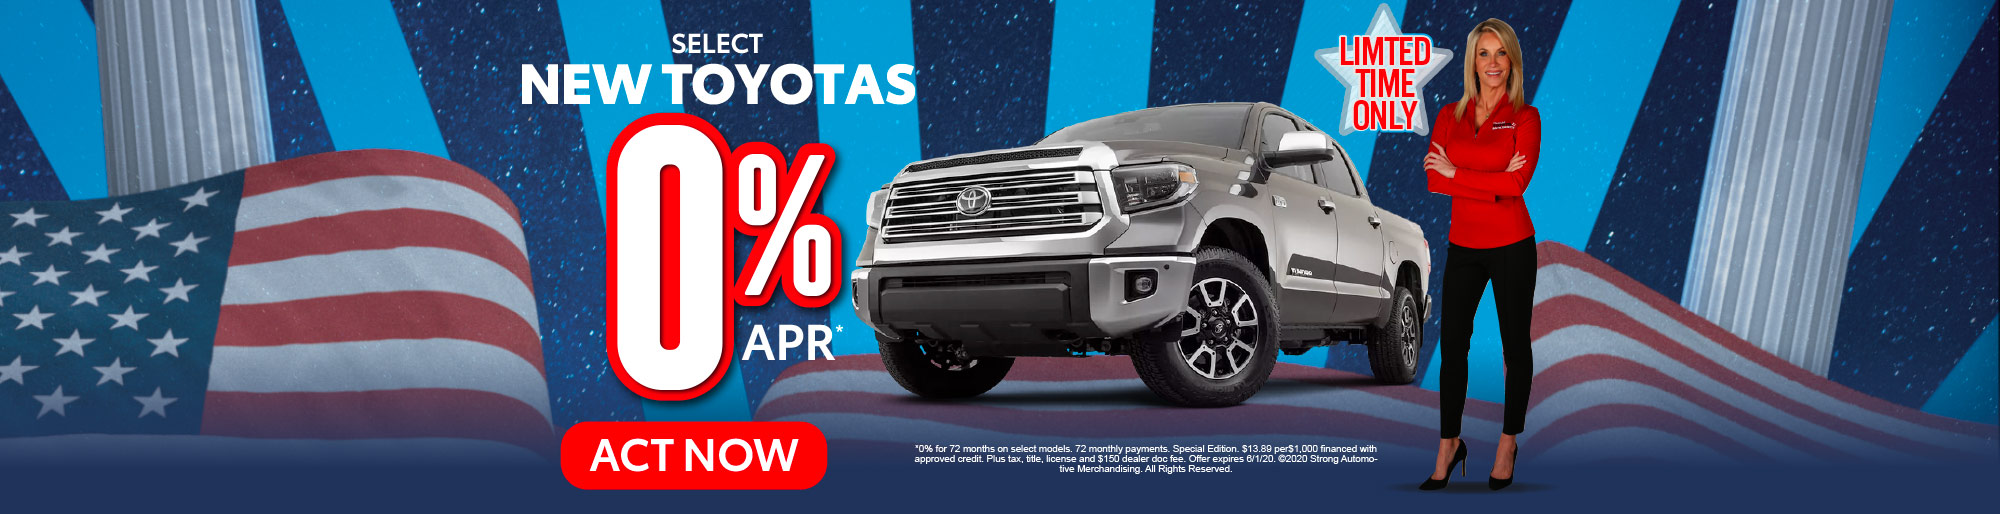 select new toyota 0% apr act now